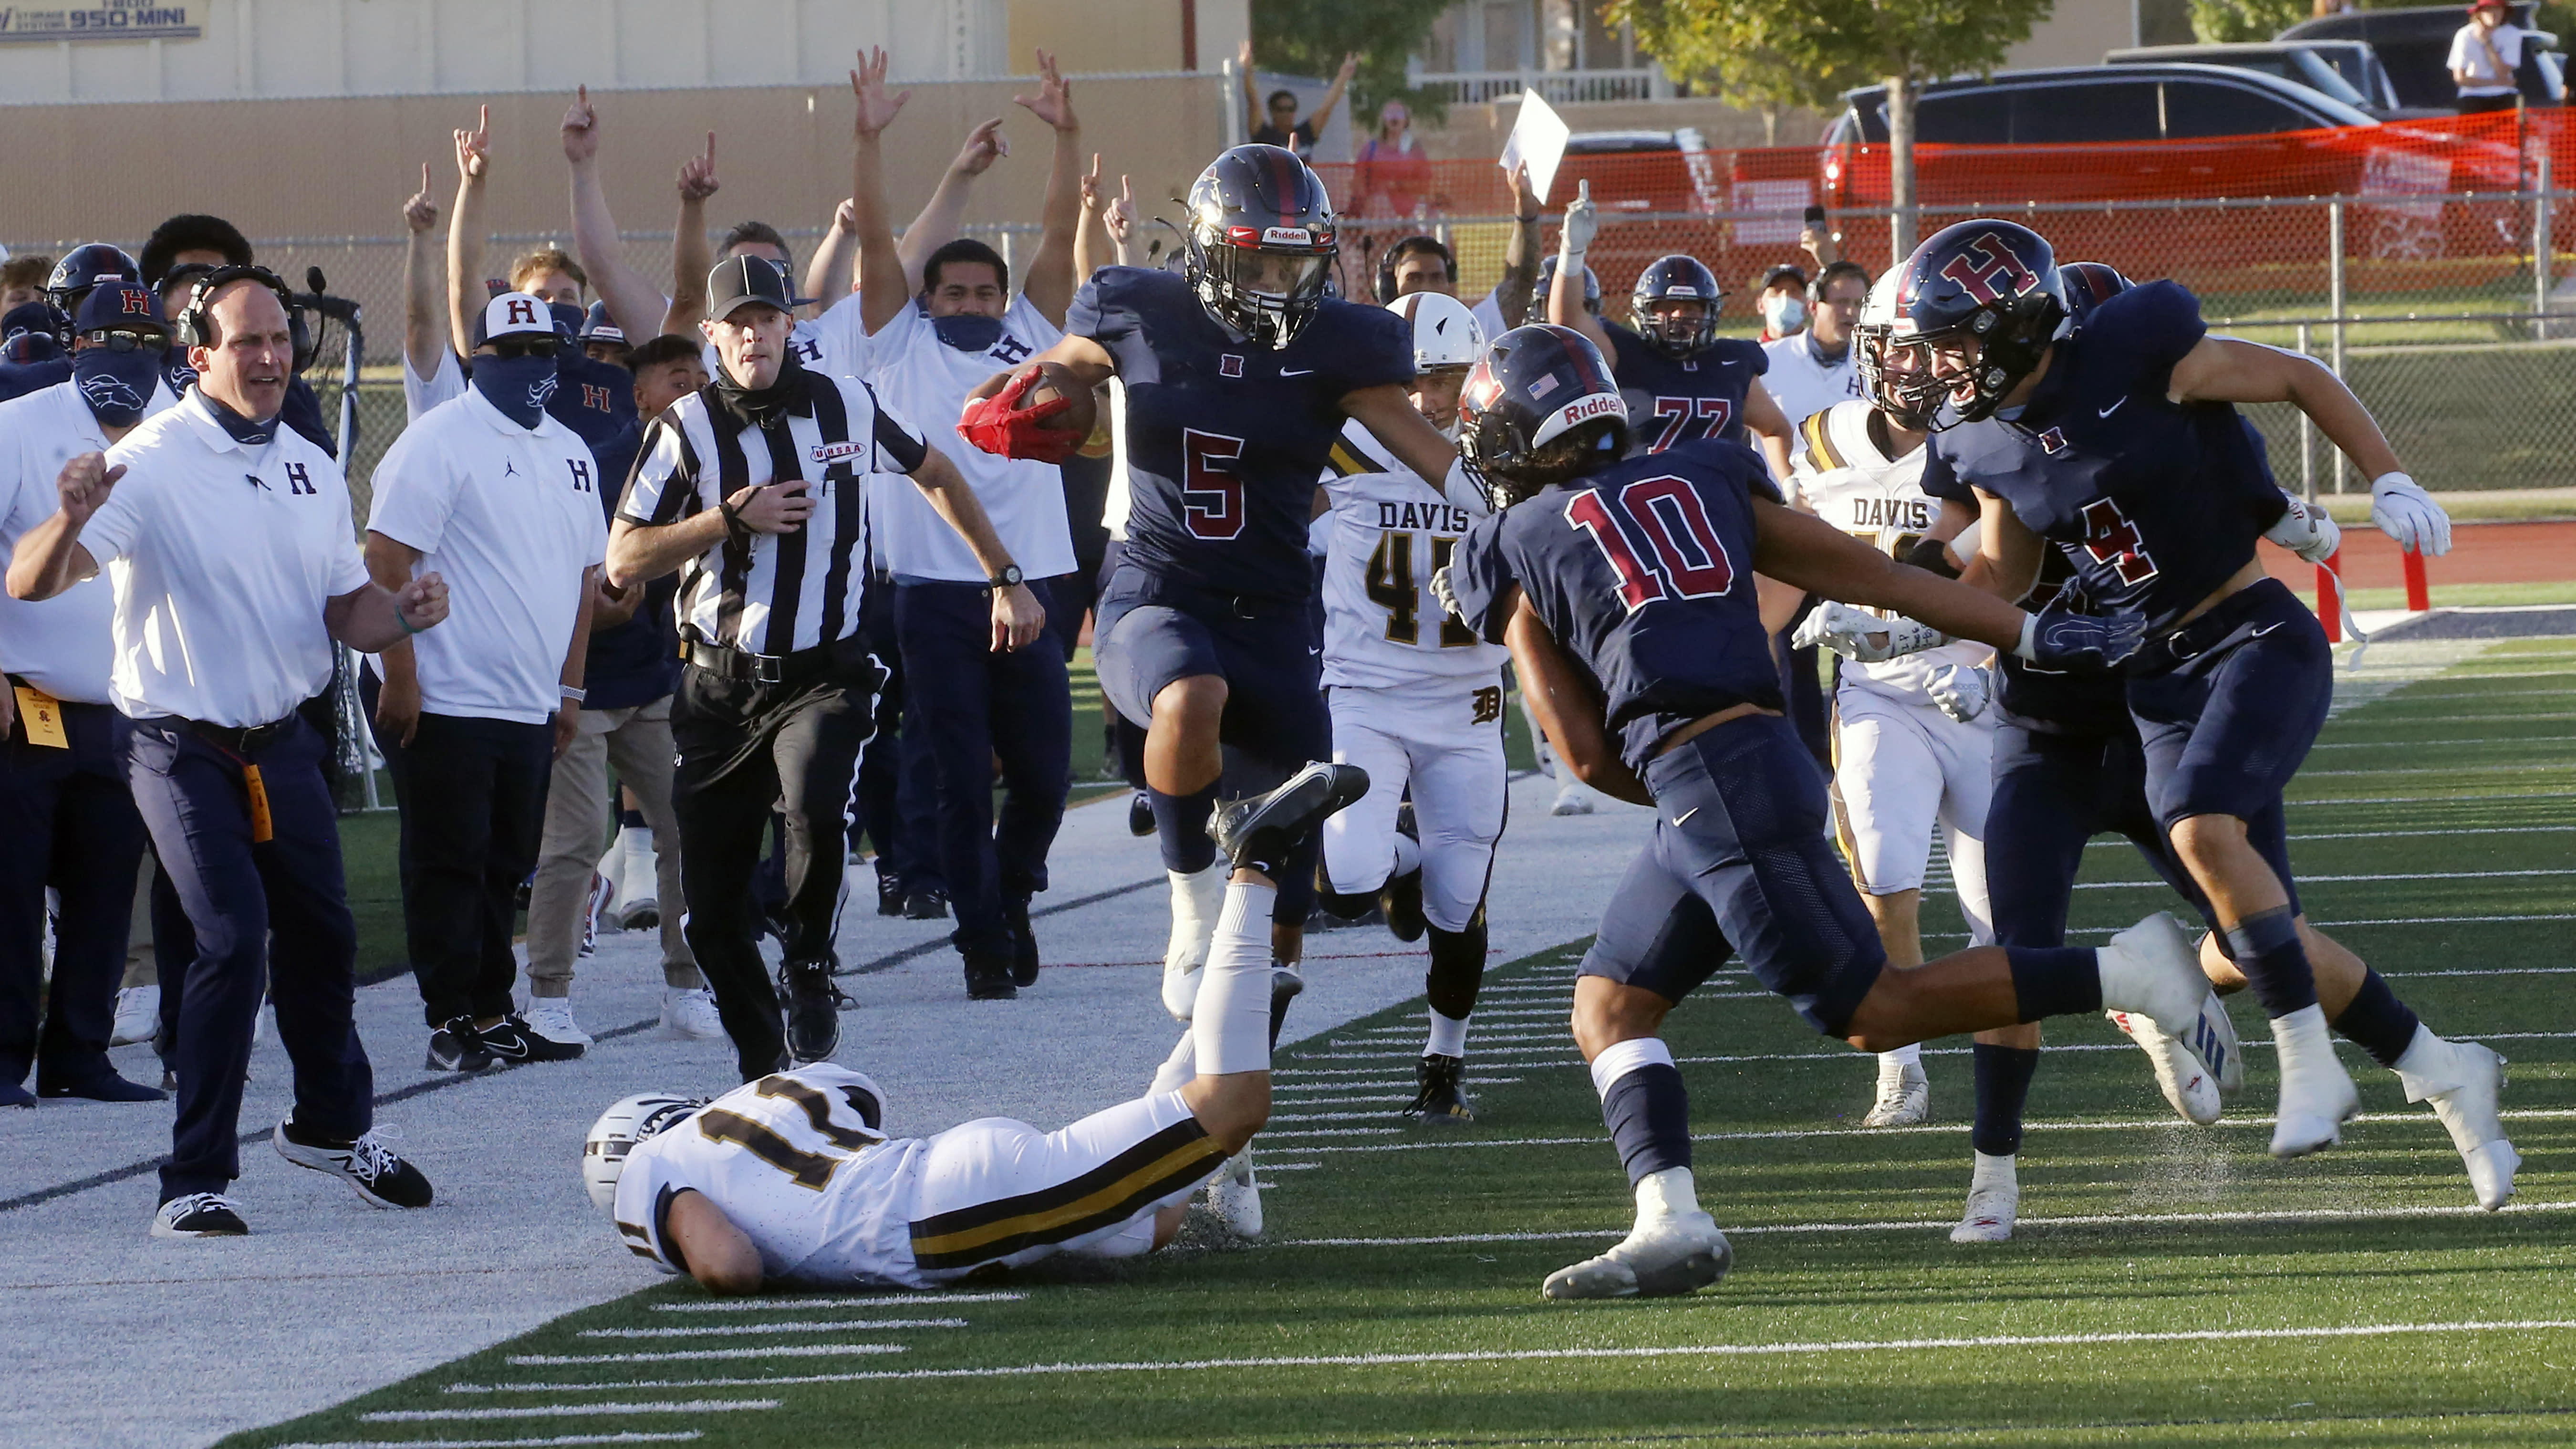 Herriman's Brock Hollingsworth (5) hurdles Jackson Leaver (11) during a high school football game, on Thursday, Aug. 13, 2020, in Herriman, Utah. Utah is among the states going forward with high school football this fall despite concerns about the ongoing COVID-19 pandemic that led other states and many college football conferences to postpone games in hopes of instead playing in the spring. (AP Photo/Rick Bowmer)